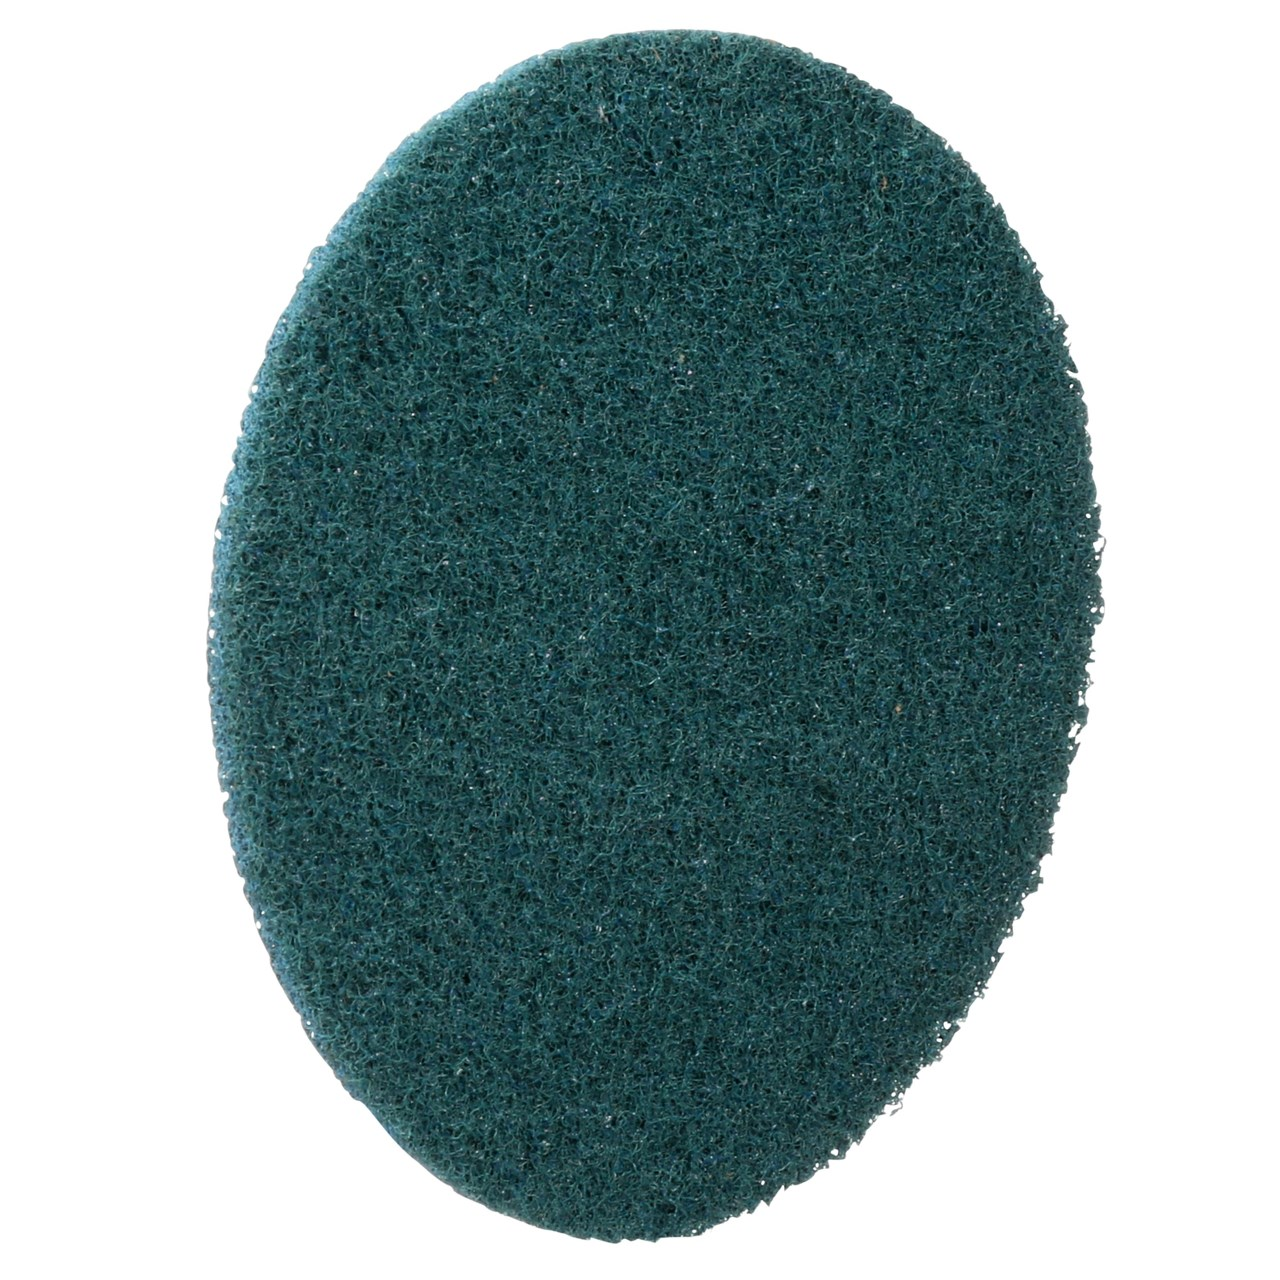 TM Scotch-Brite 3M SC-DH Coarse Grit Surface Conditioning Disc Pack of 25 Hook and Loop Attachment 7 Diameter Aluminum Oxide